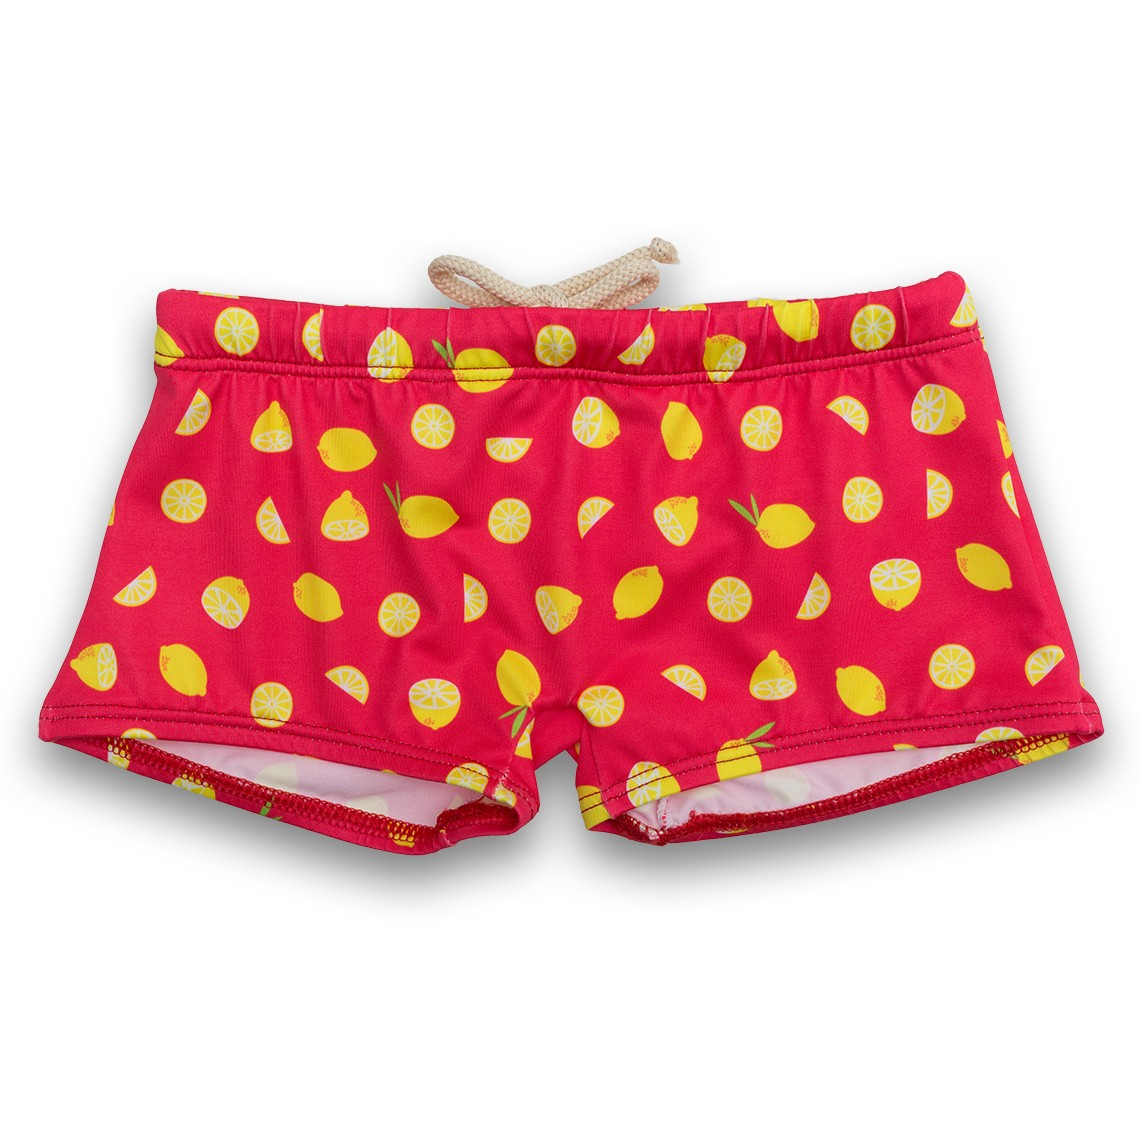 Boy Swimsuit Red Limones 1 year